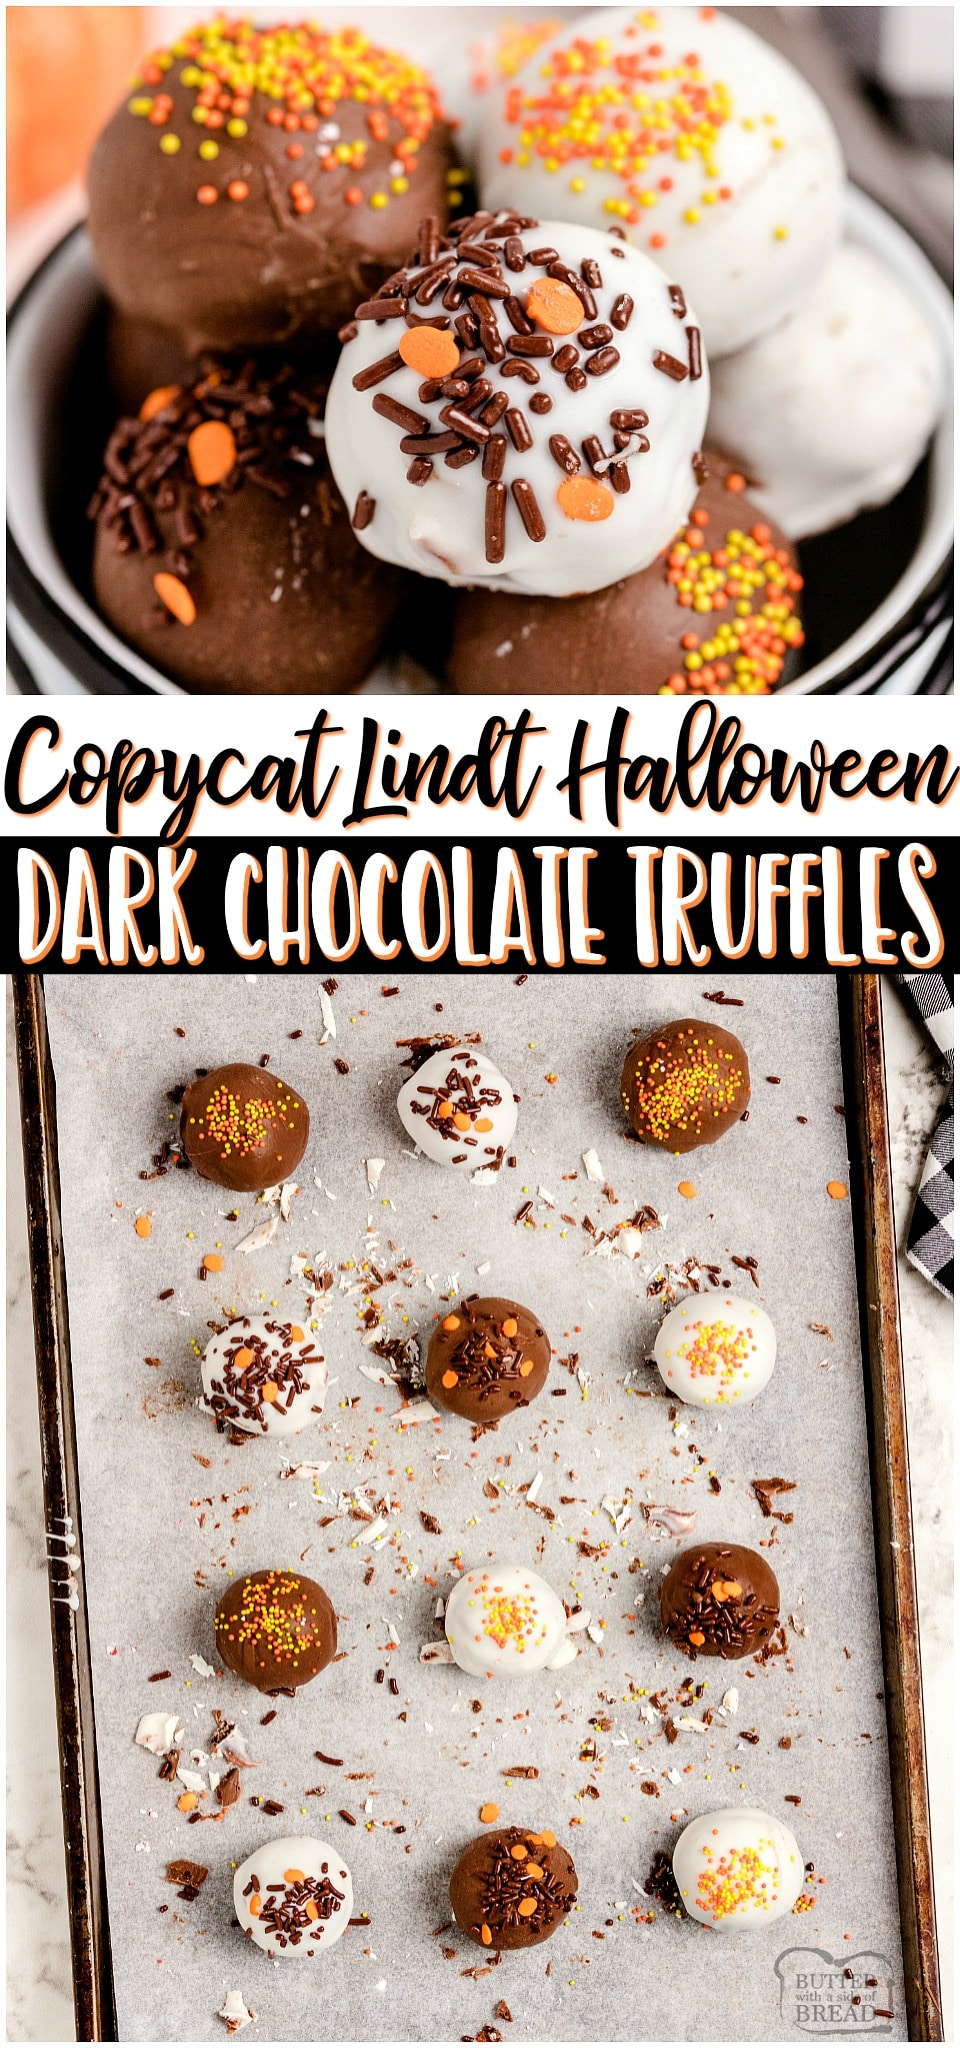 Homemade Halloween Lindt Dark Chocolate Truffles made with just 5 ingredients and SO amazing! Chocolate chips, heavy cream and butter combine for a rich & smooth luscious chocolate truffle filling that rivals Lindt's! Chocolate lovers must try these festive Halloween Truffles!